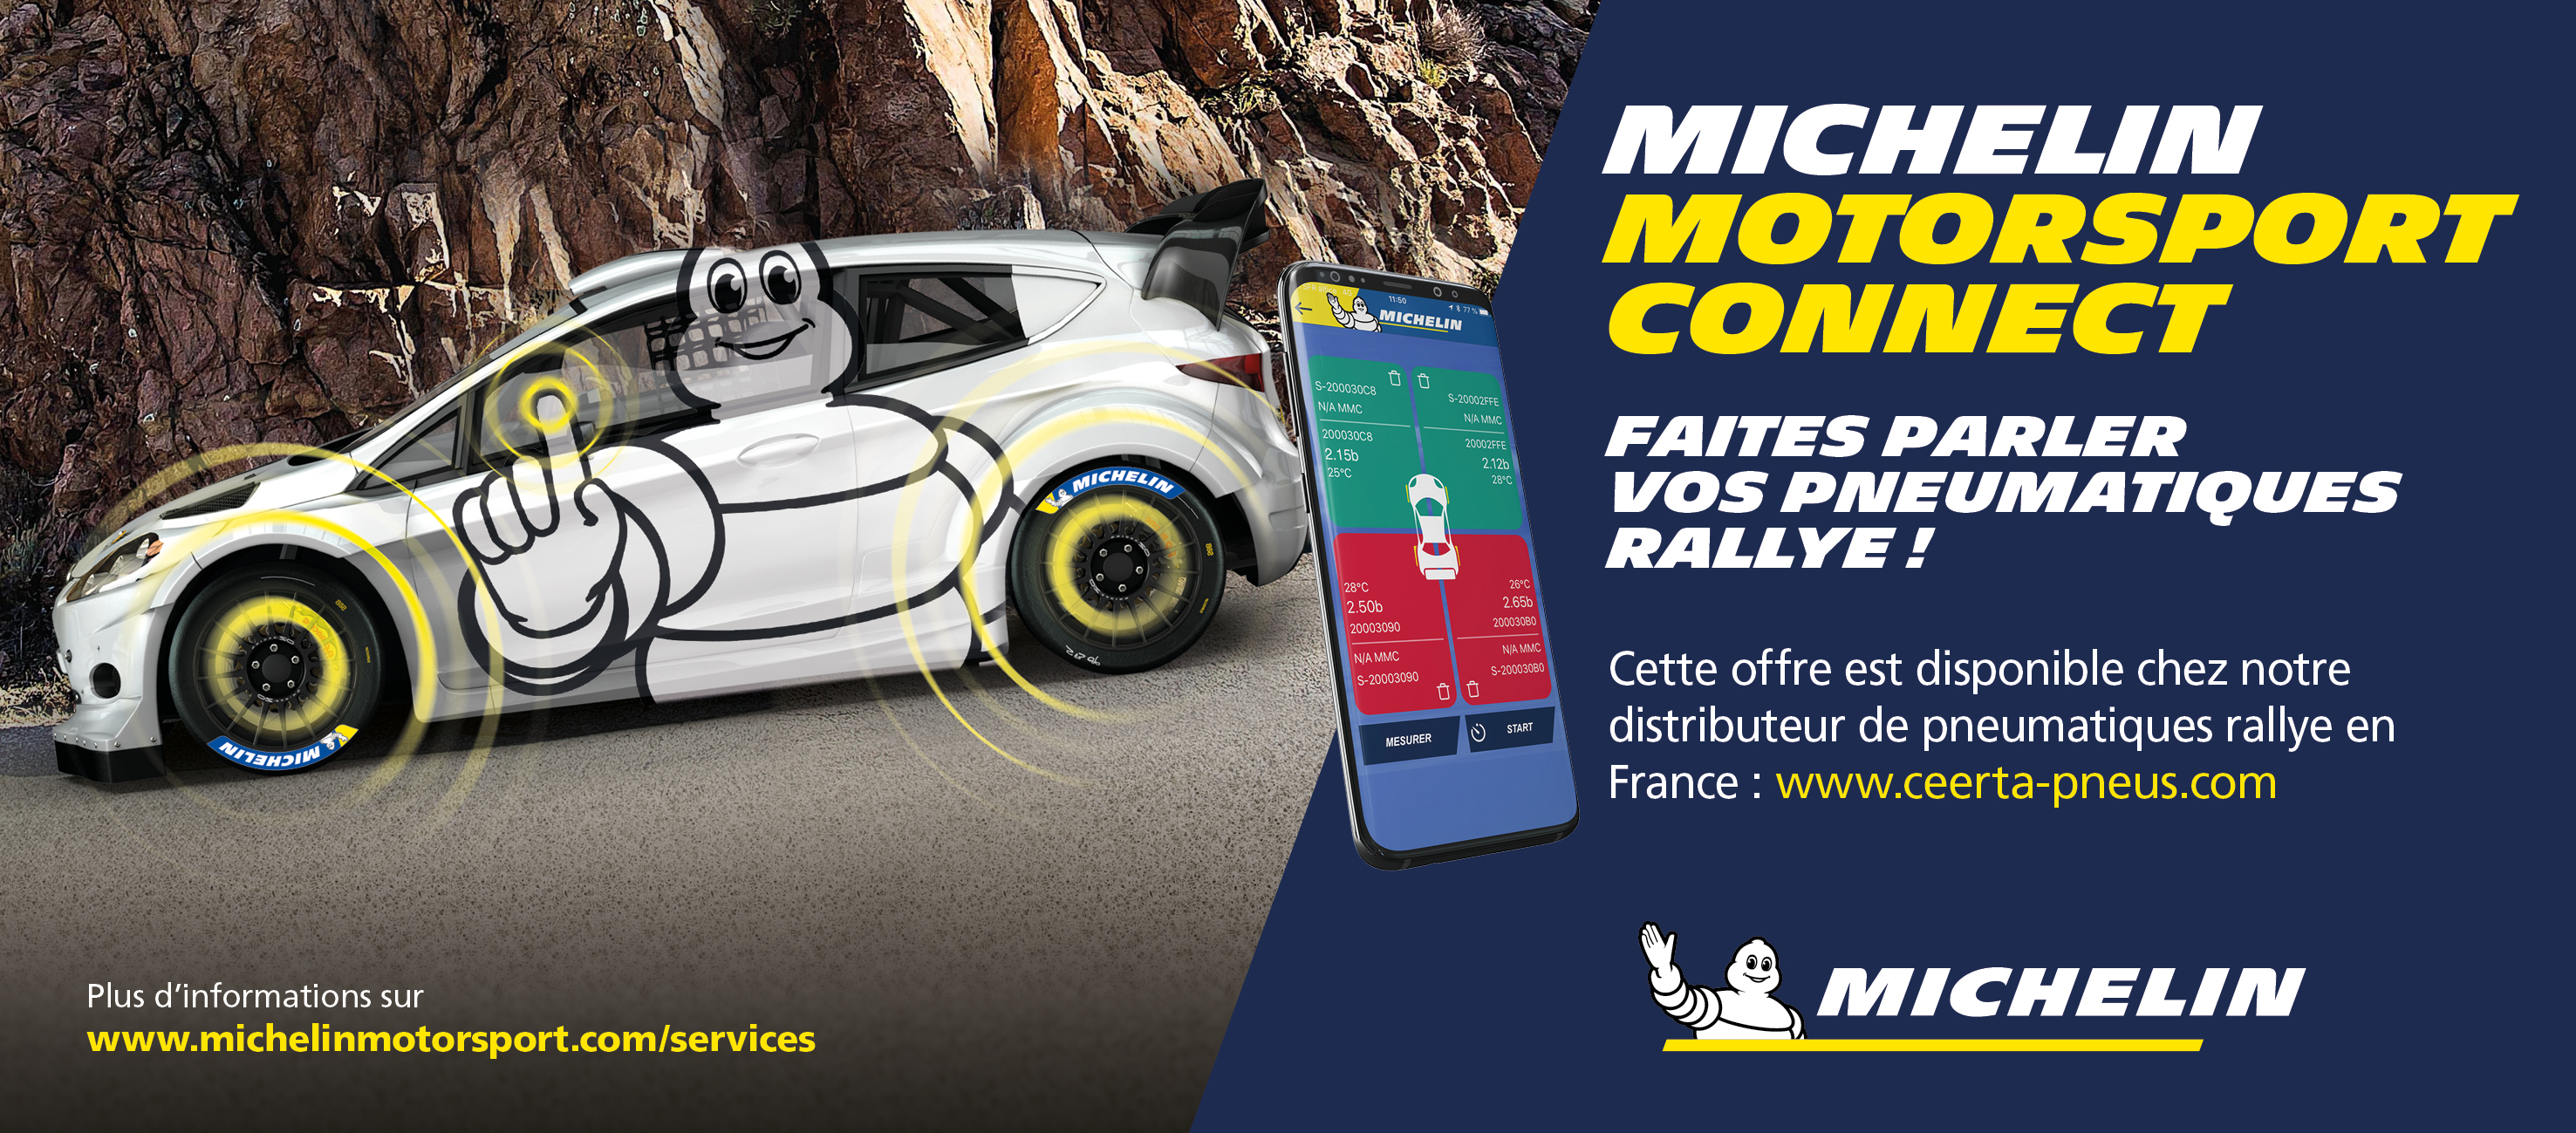 MICHELIN MOTORSPORT CONNECT